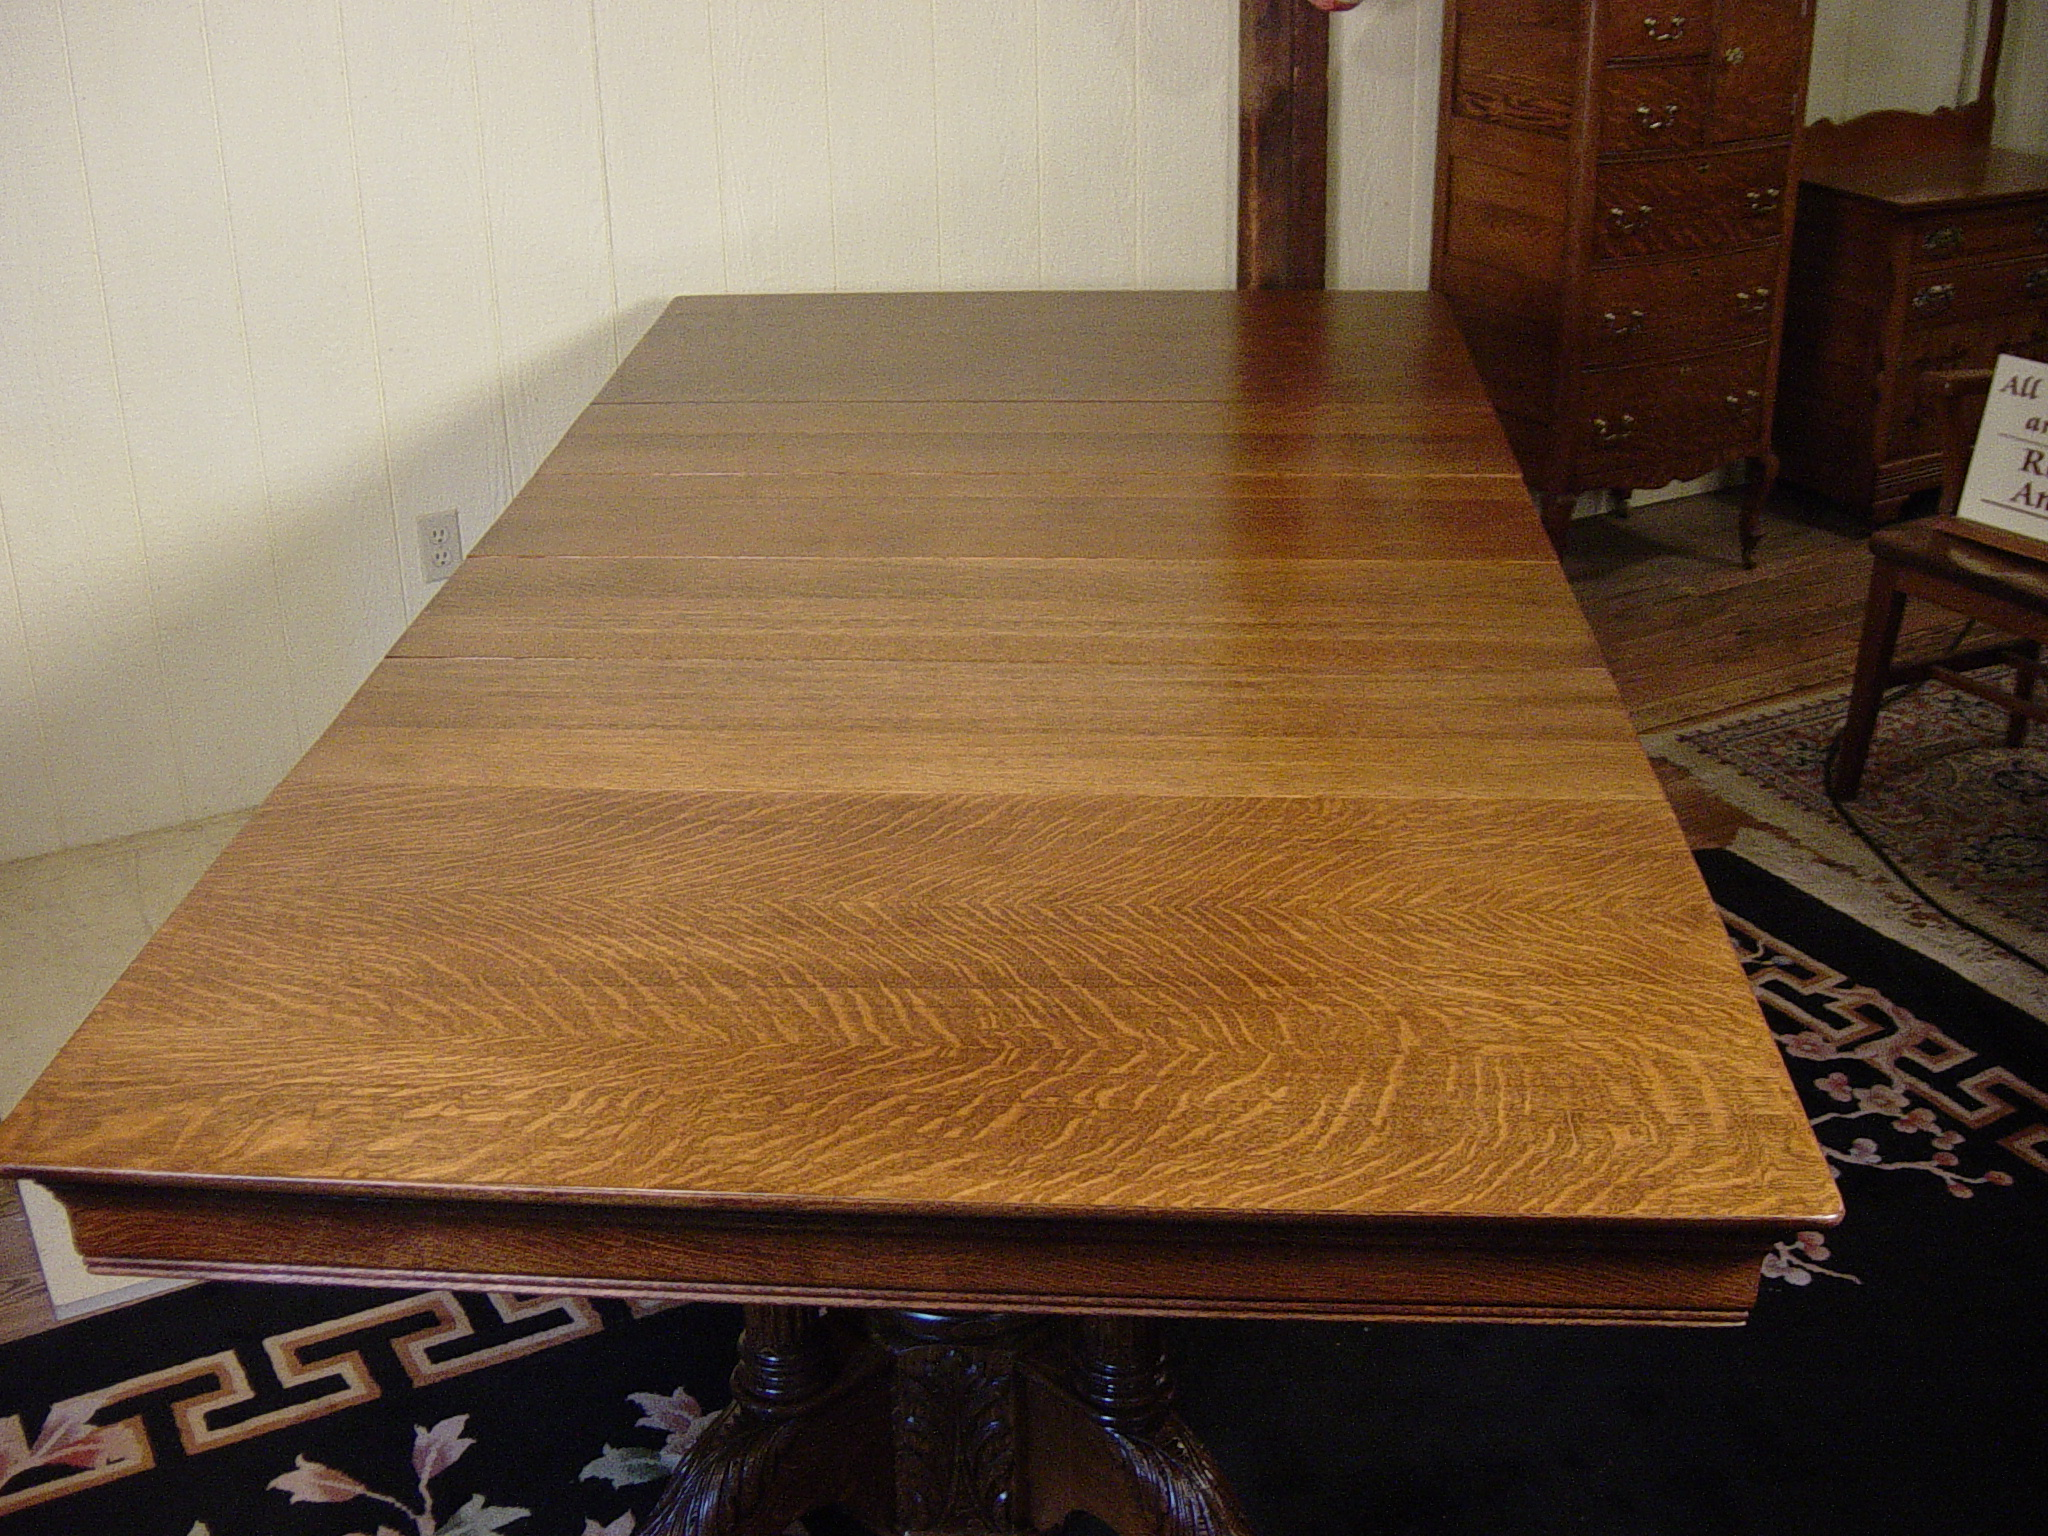 48 Quot Square Oak Claw Foot Table With 4 12 Quot Original